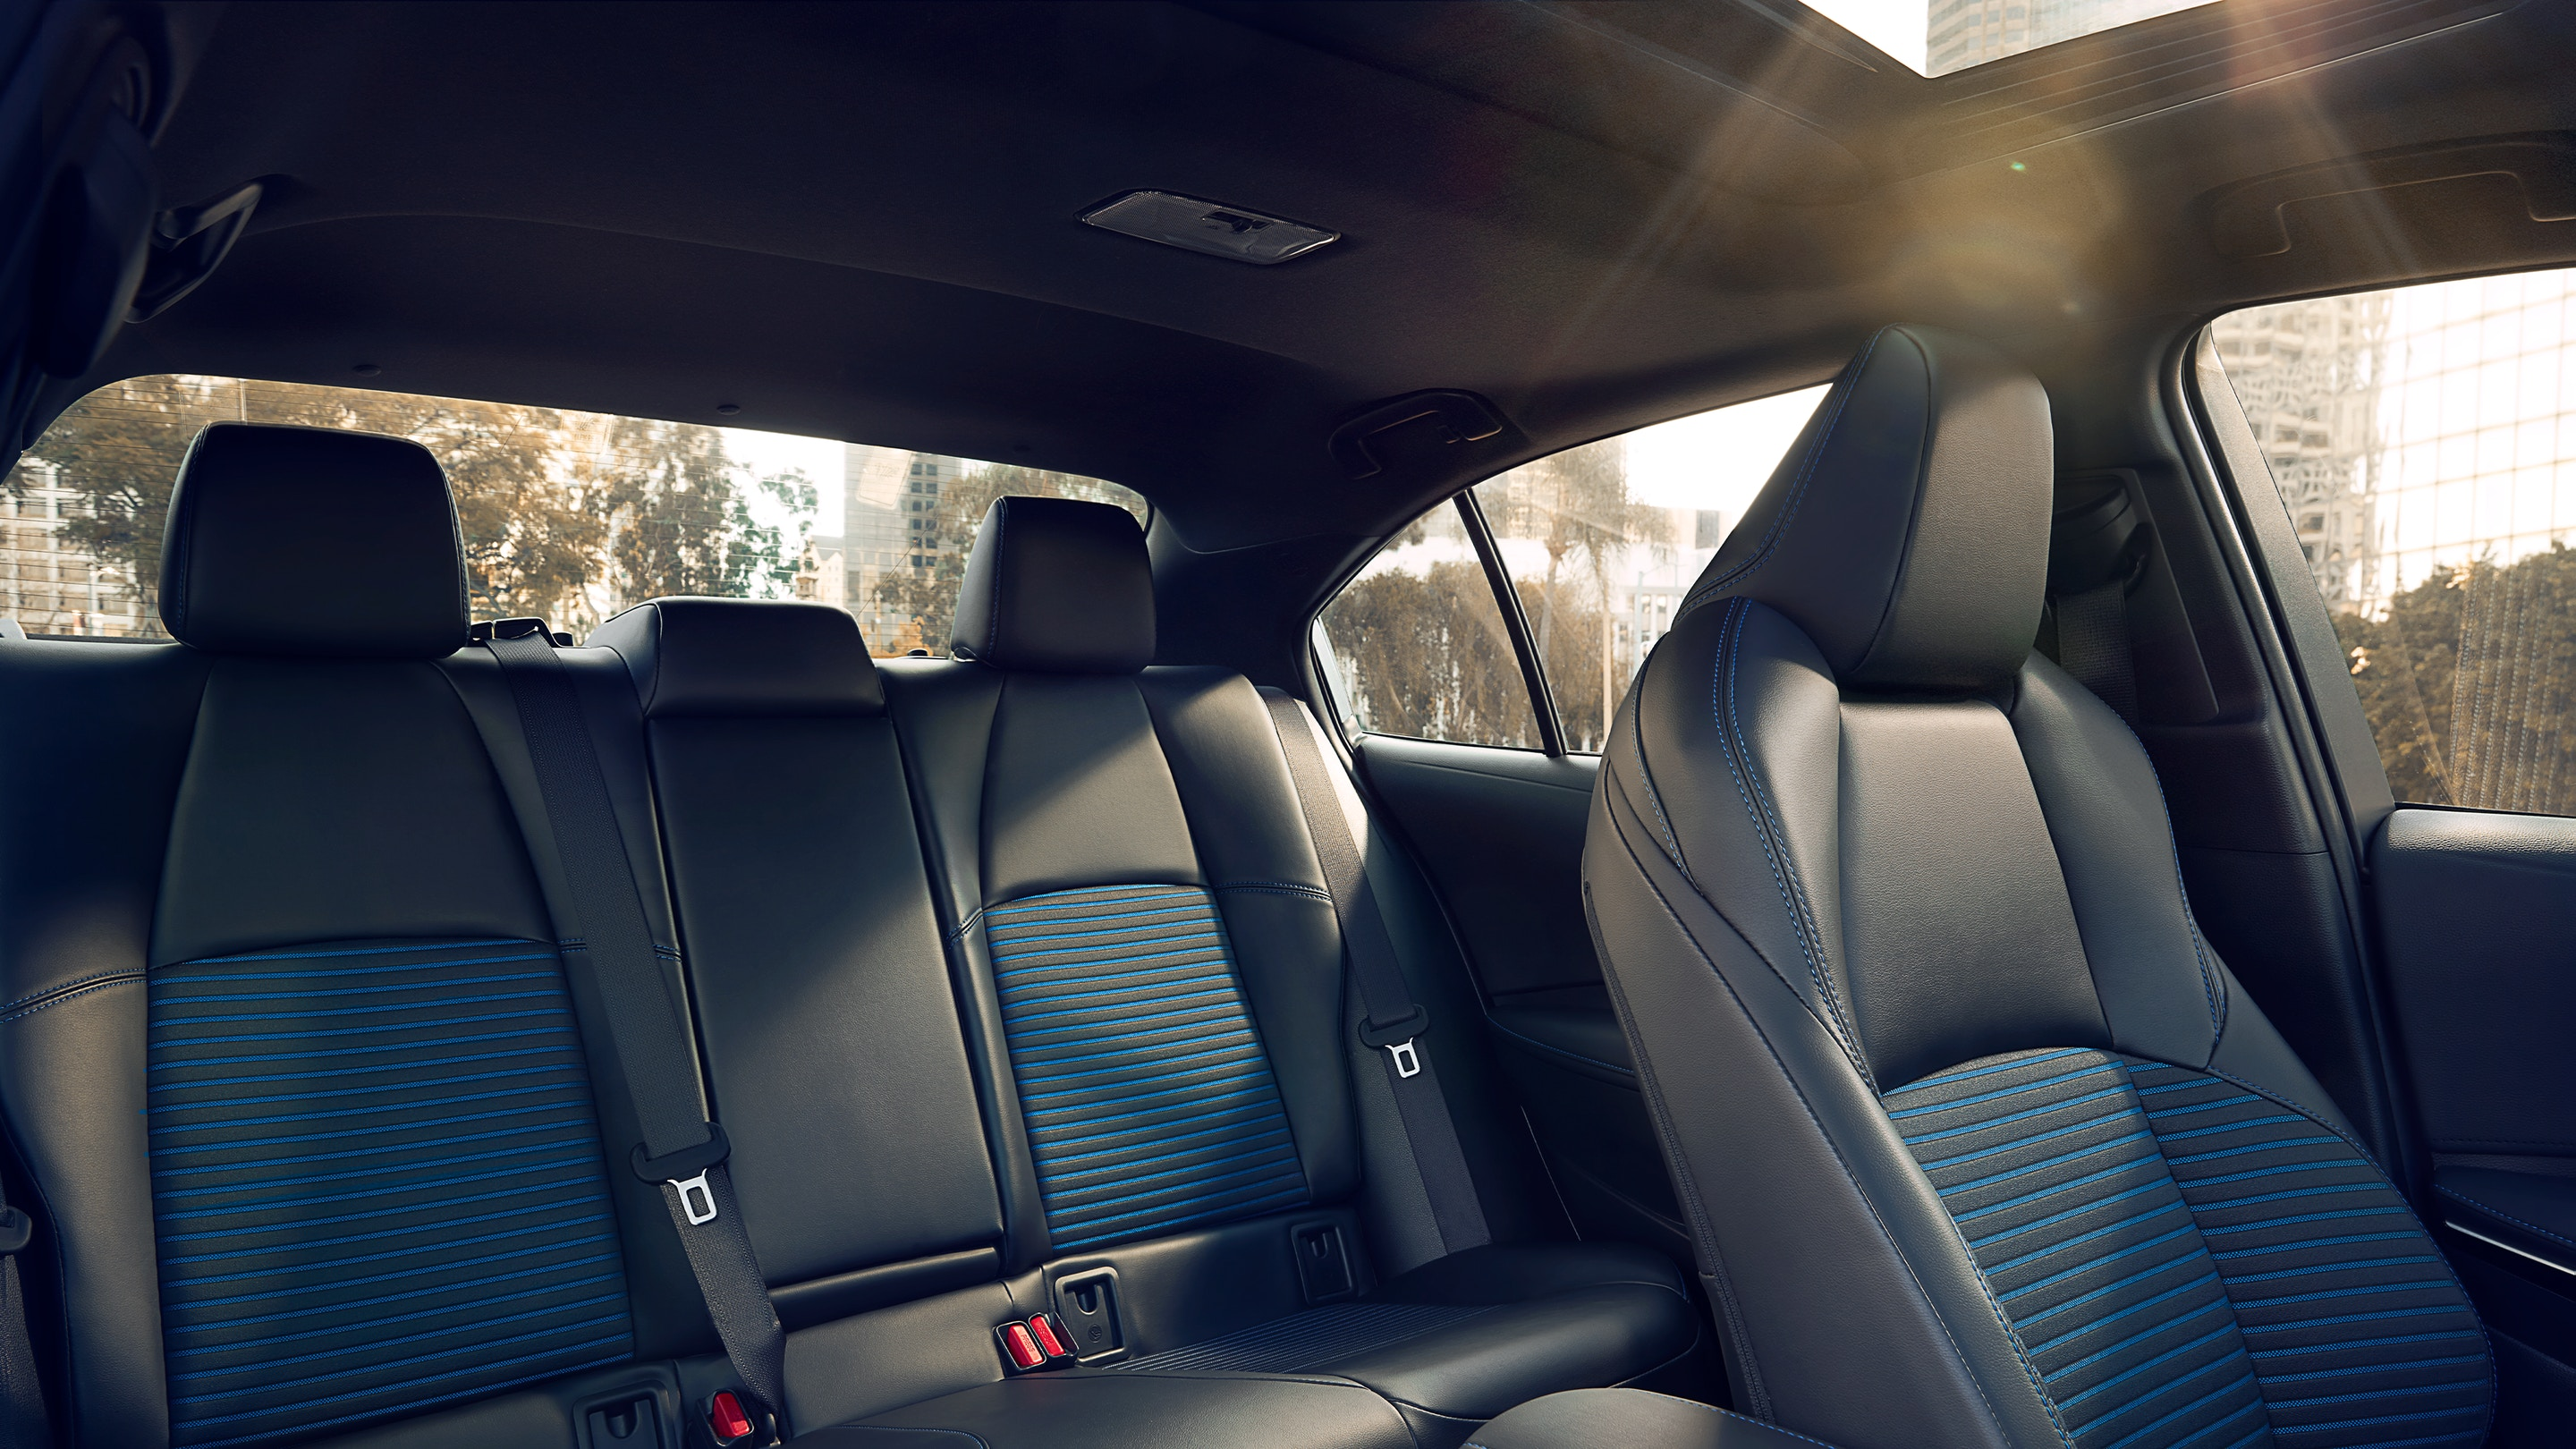 Sit Back And Relax in the 2020 Corolla